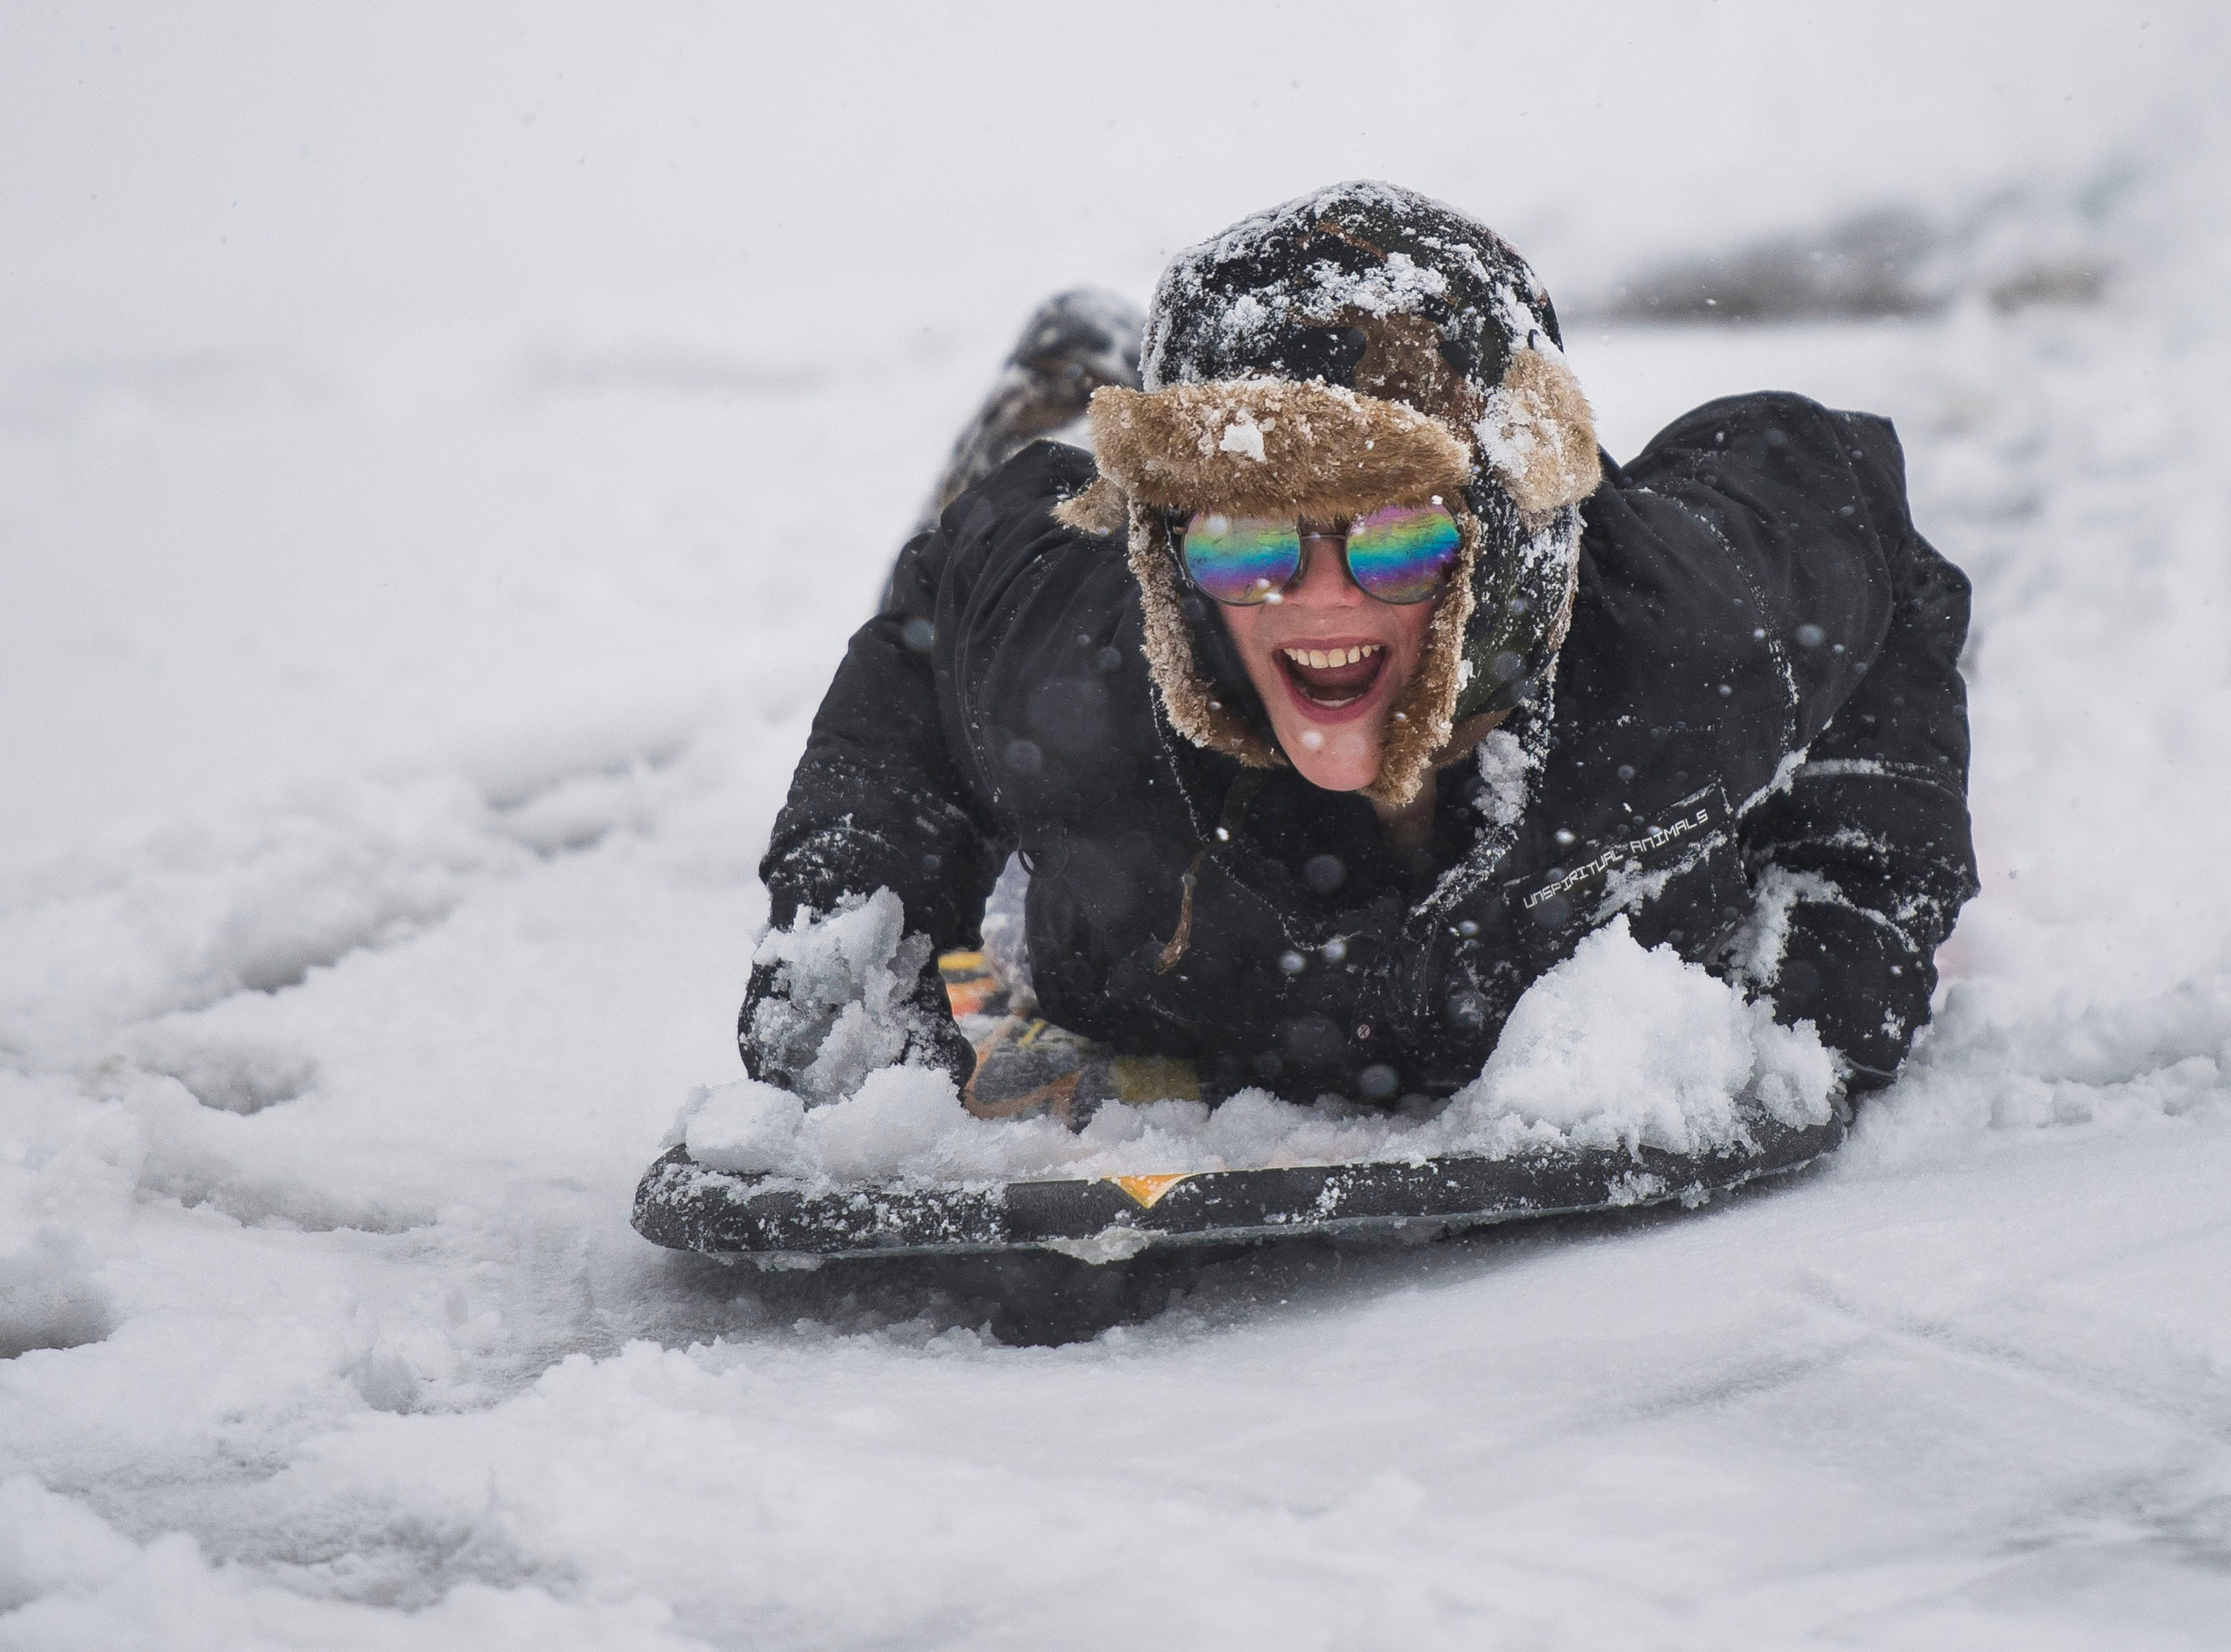 Morgan Warr, 12, drops into the bowl on a sled at Edora Park on Wednesday, March 13, 2019, in Fort Collins, Colo.